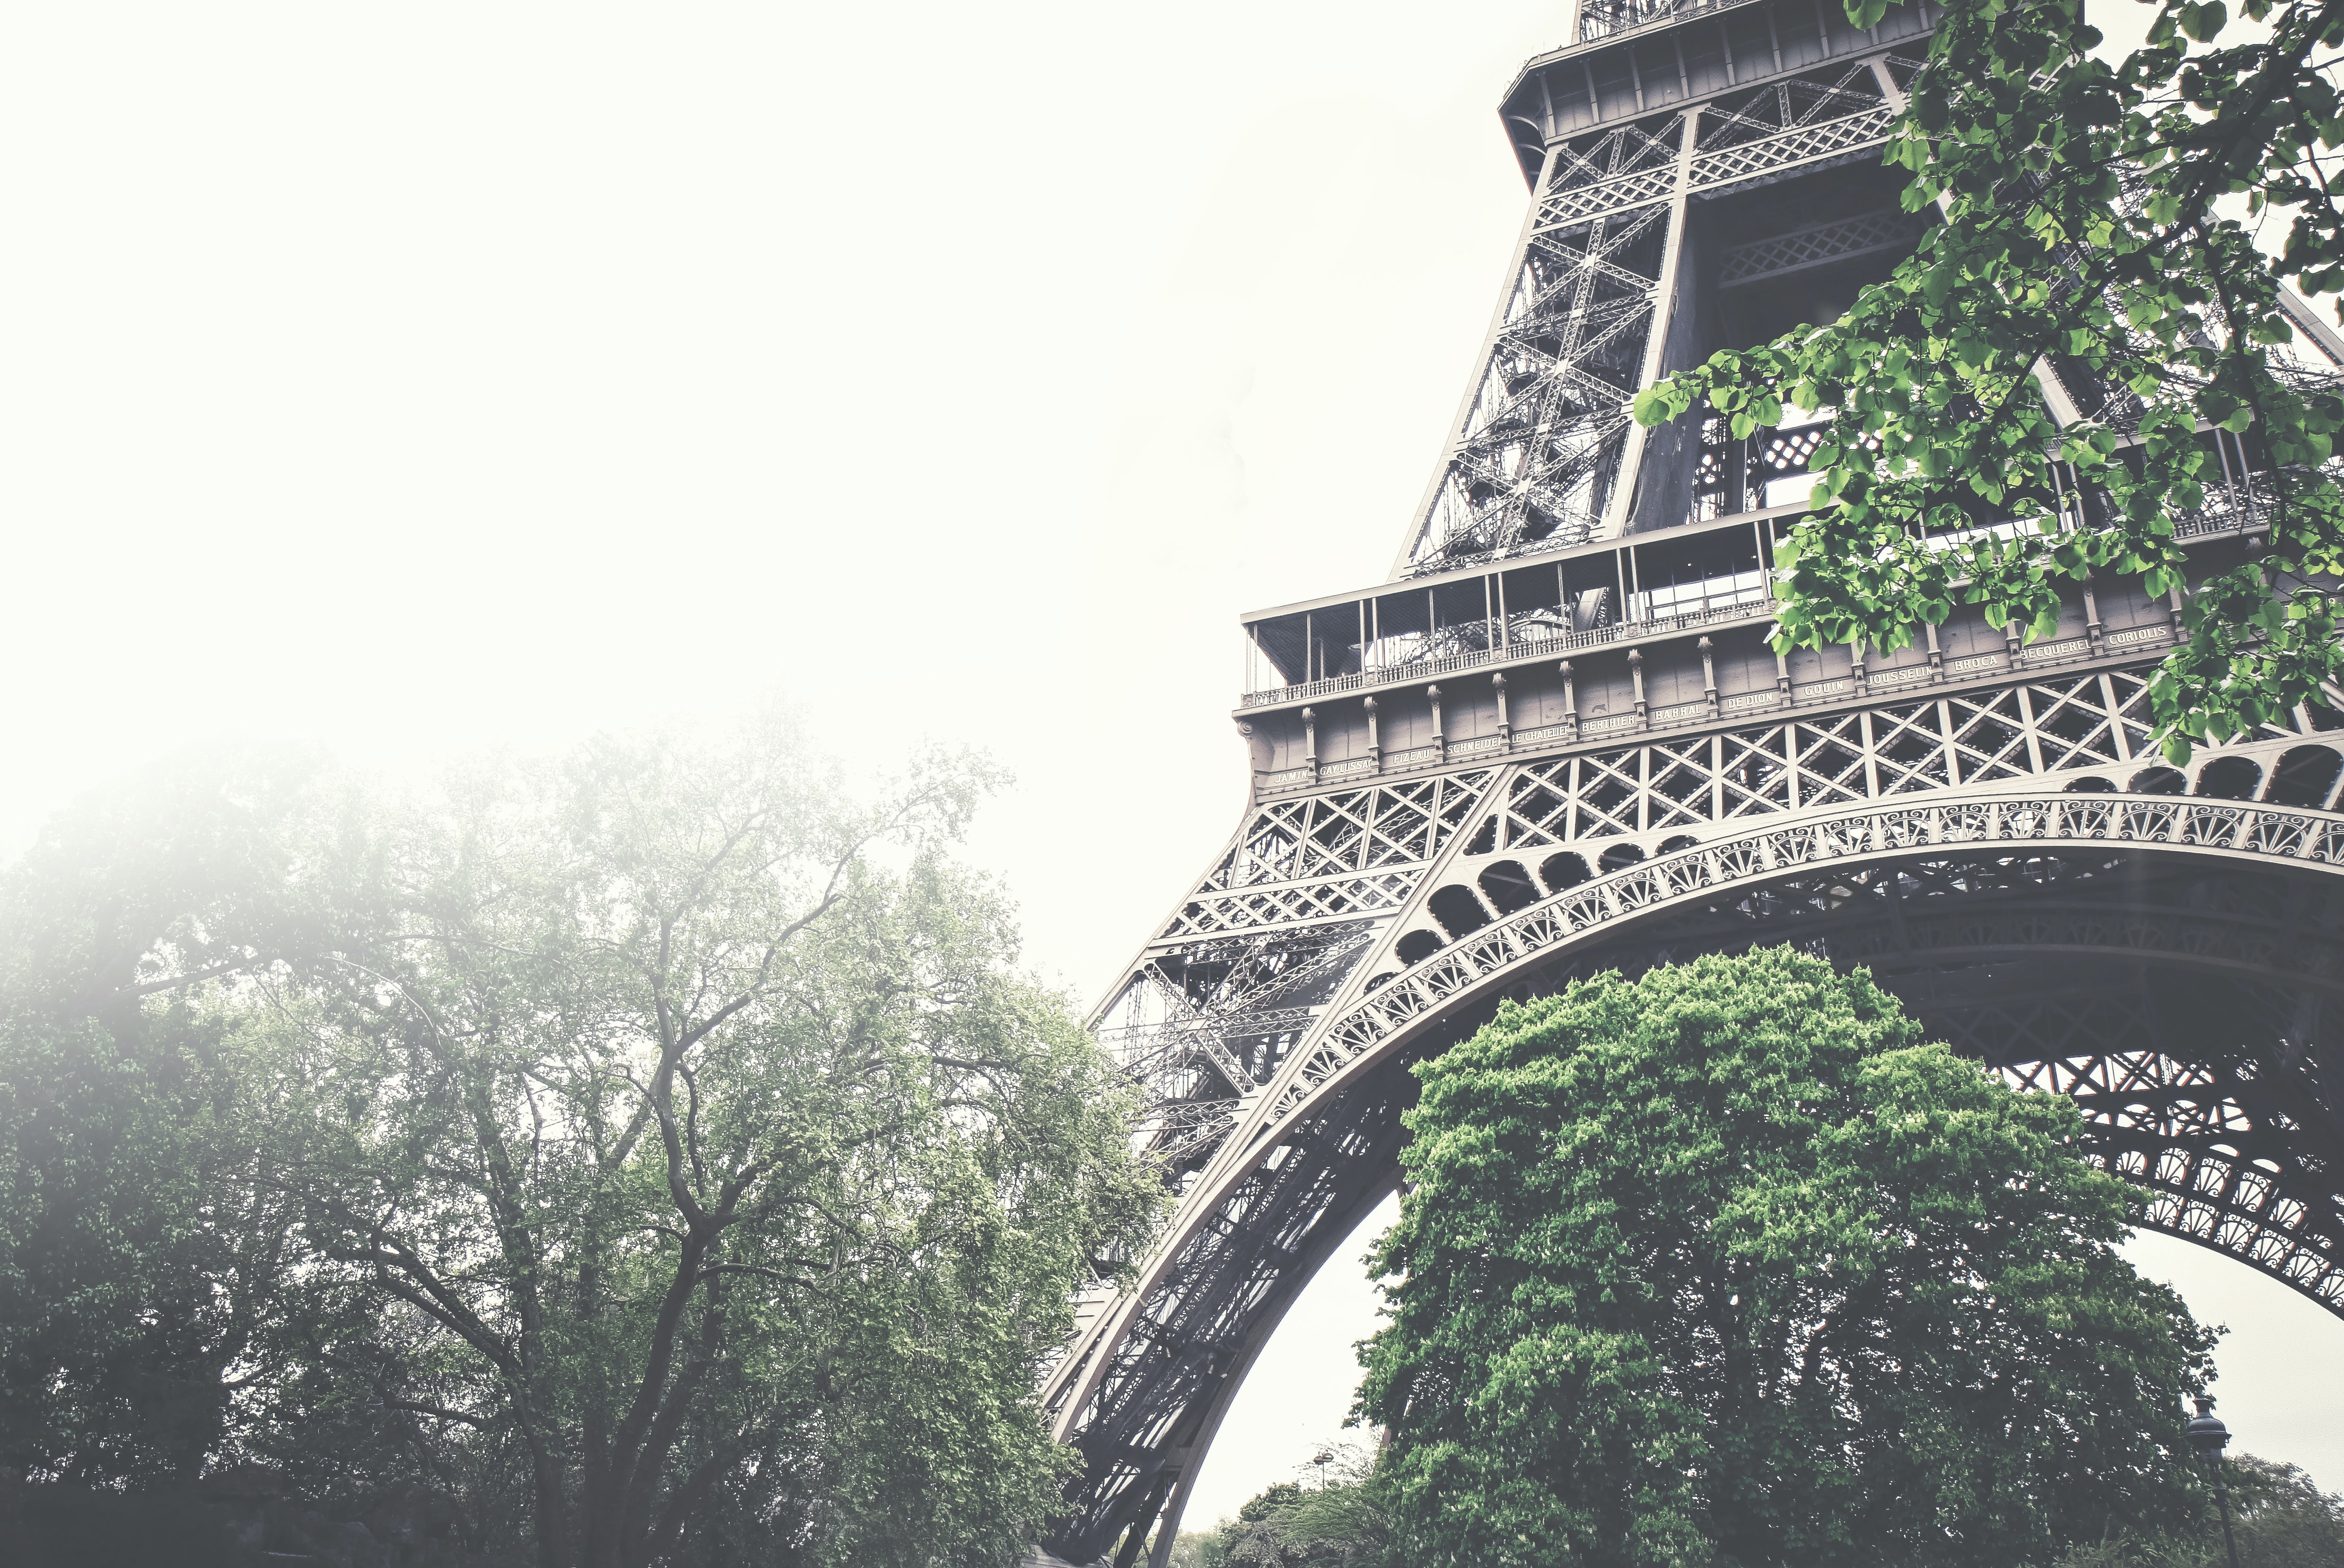 low-angle photograph of Eiffel tower